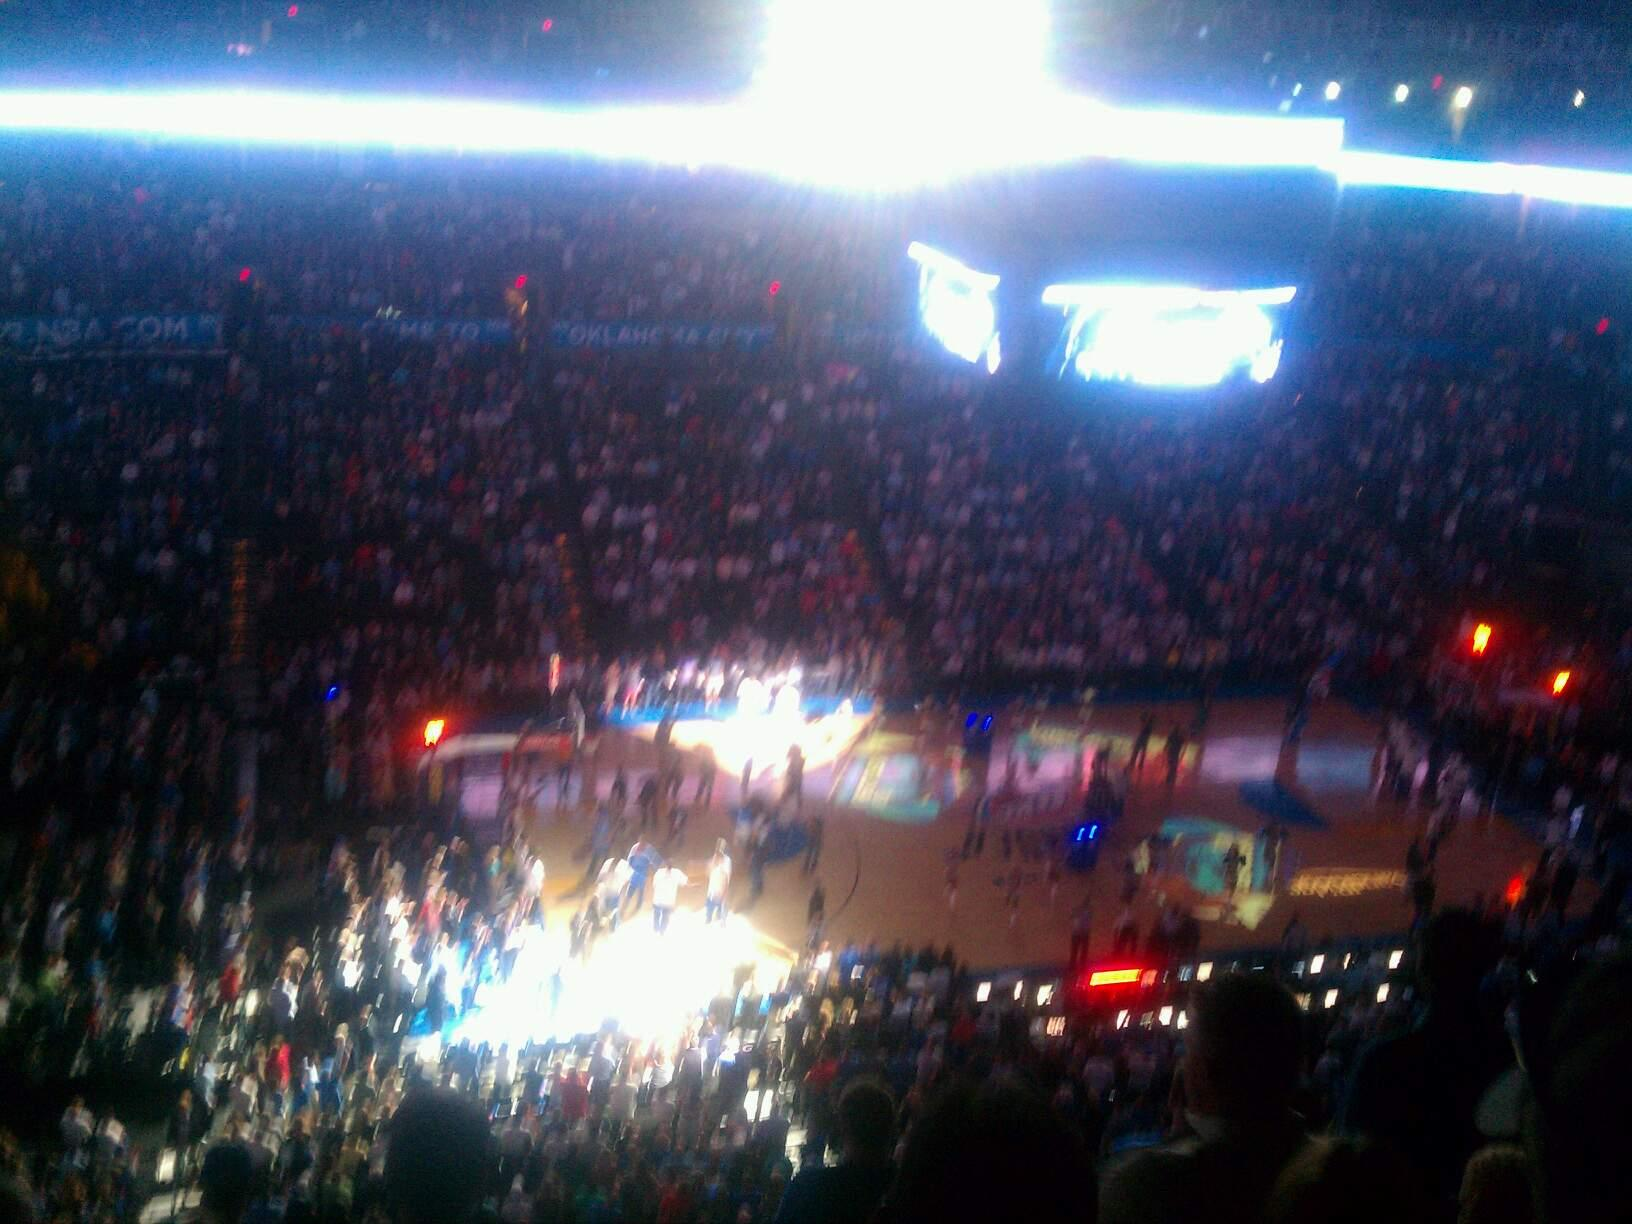 Chesapeake Energy Arena Section 326 Row j Seat 17